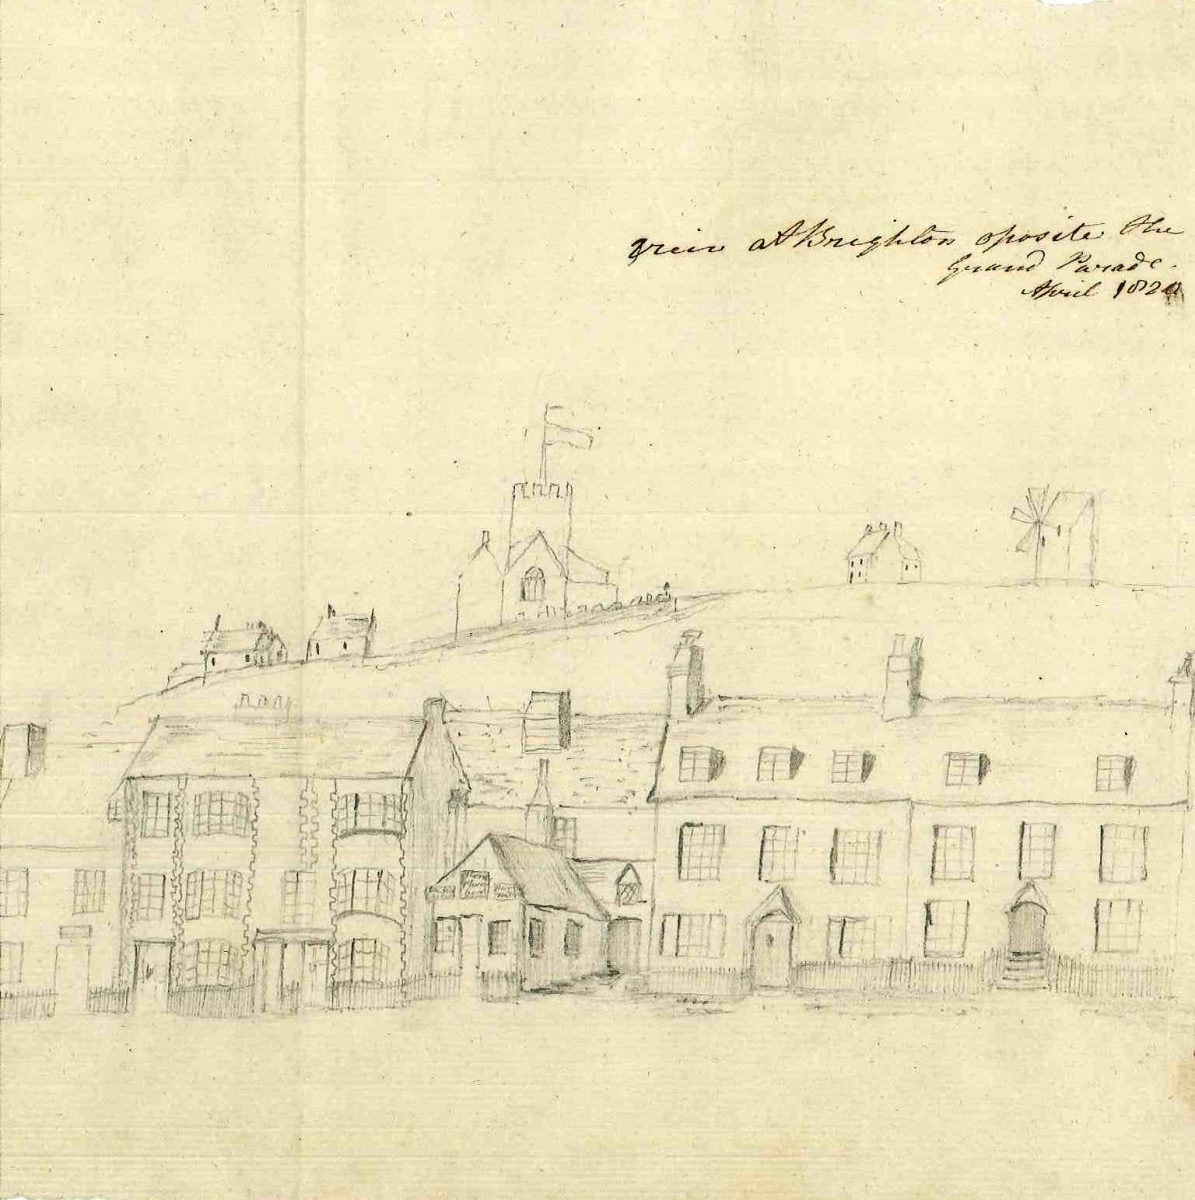 Illustrated diary of Frances Sayer's visit to Brighton in 1818